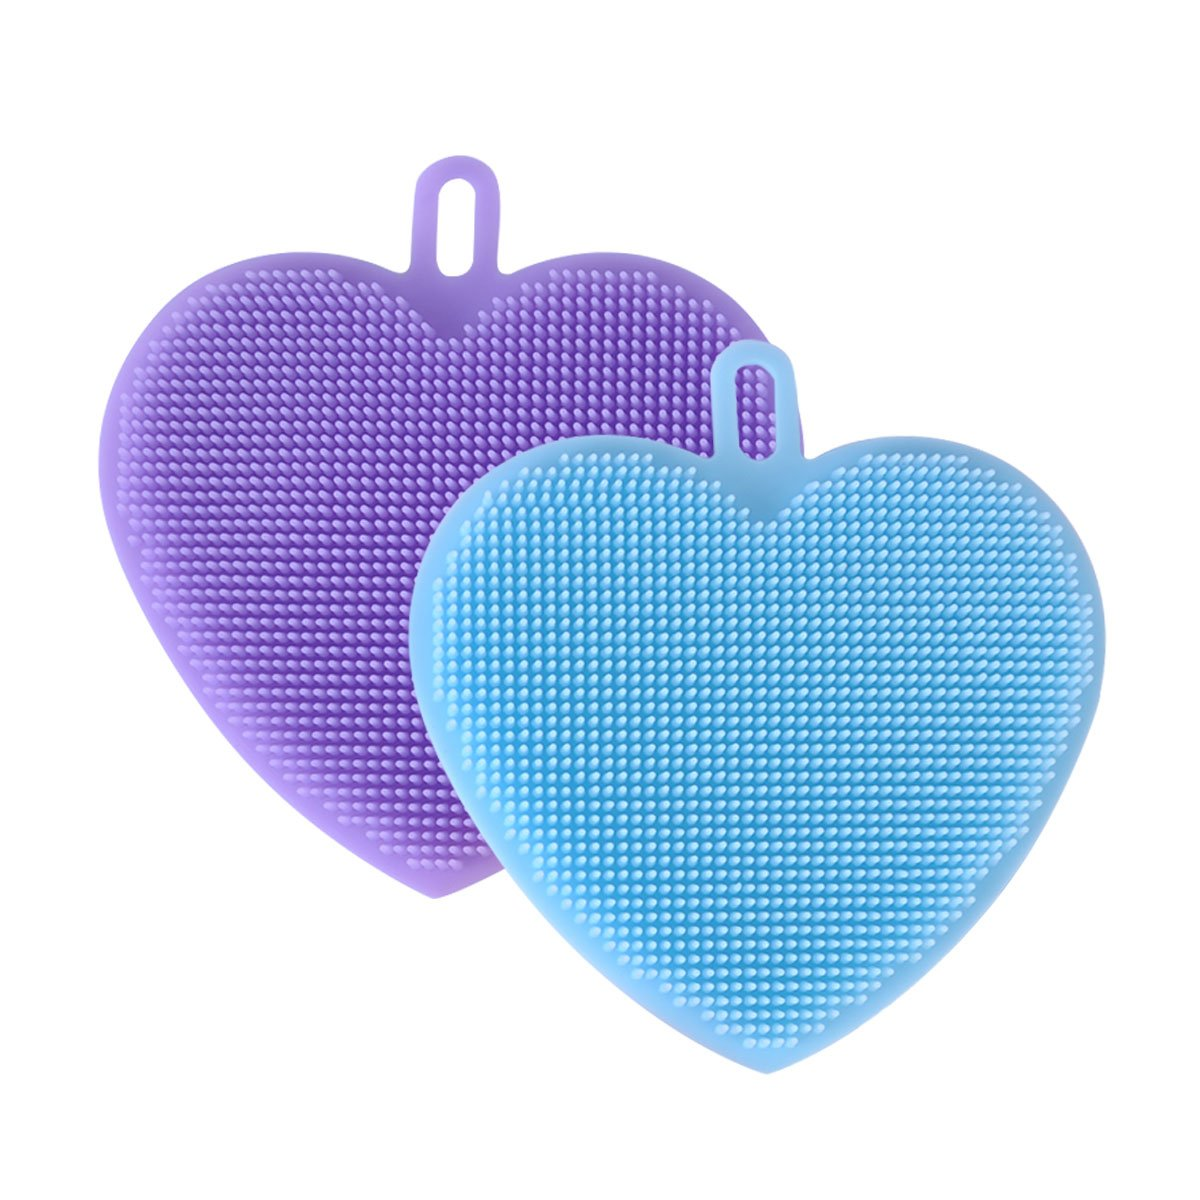 Prokitchen Antibacterial Silicone Sponge Kitchen Best for Washing Pots and Pans, Scrubbing Vegetables and Cleaning Dishes, Heart Shape, Non-Scratch and Heat-Resistant, Set of 2